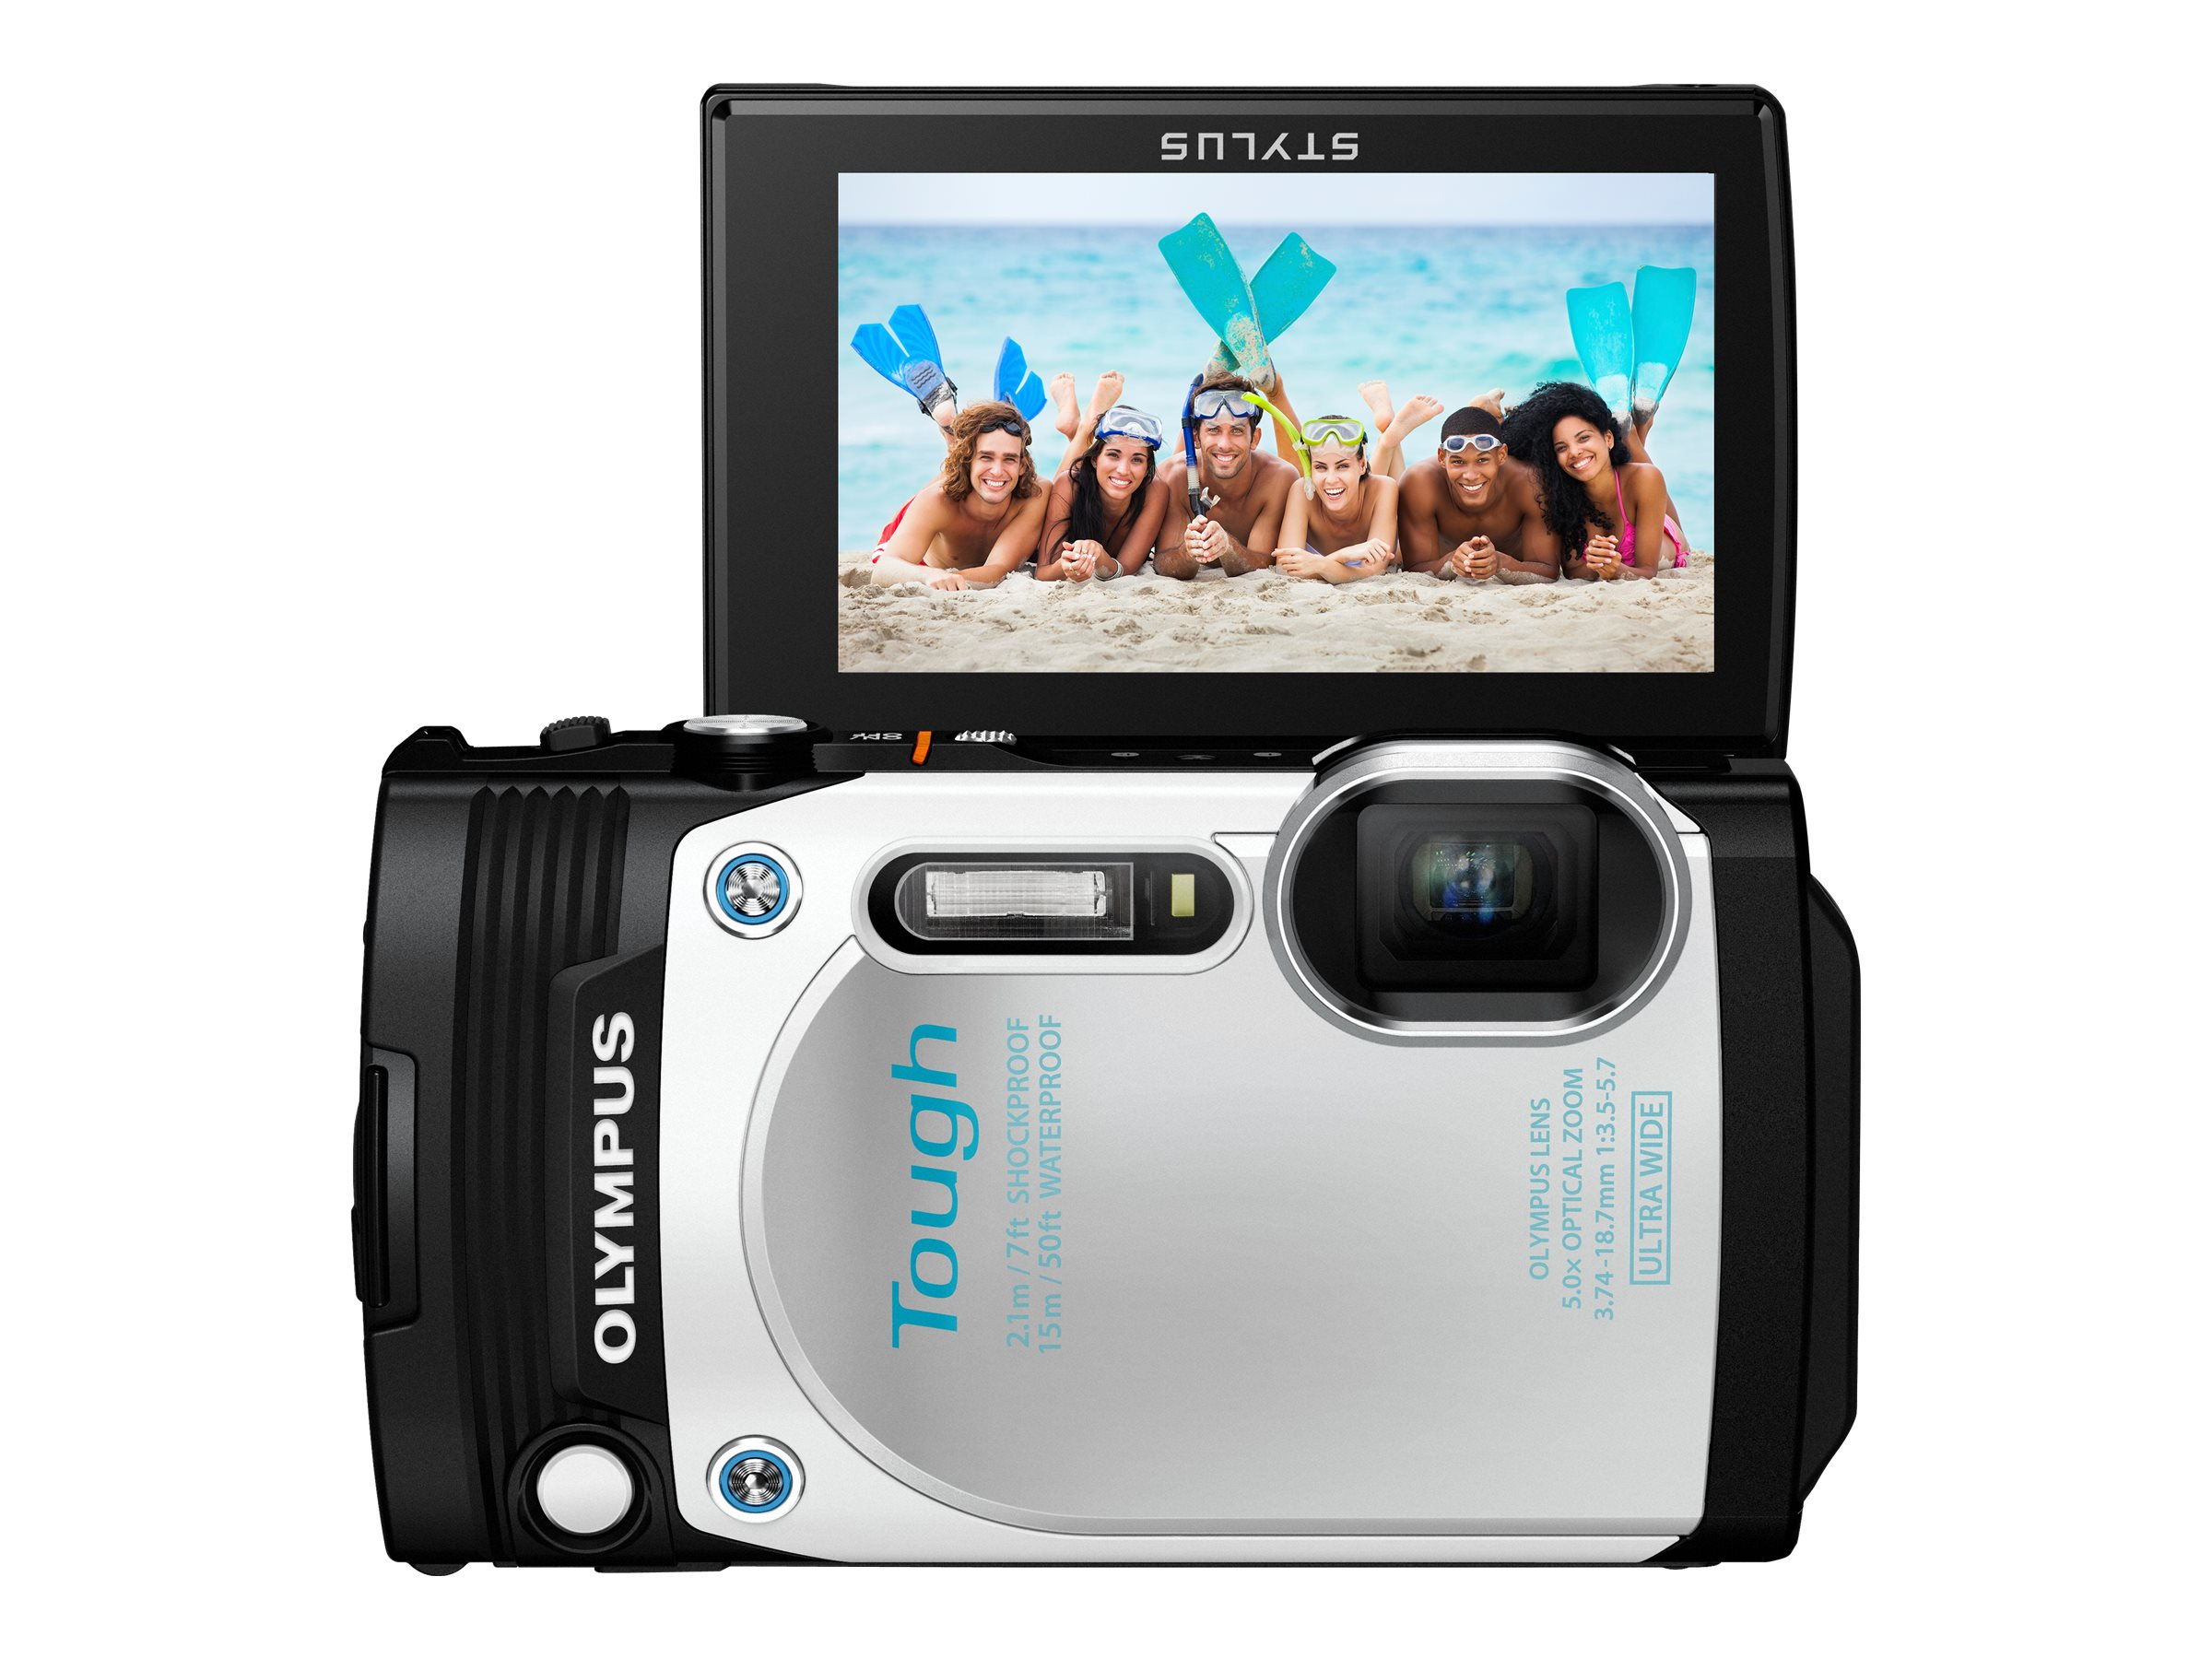 Olympus Stylus Tough TG-870 Digital Camera, White, V104200WU000, 31188739, Cameras - Digital - Point & Shoot